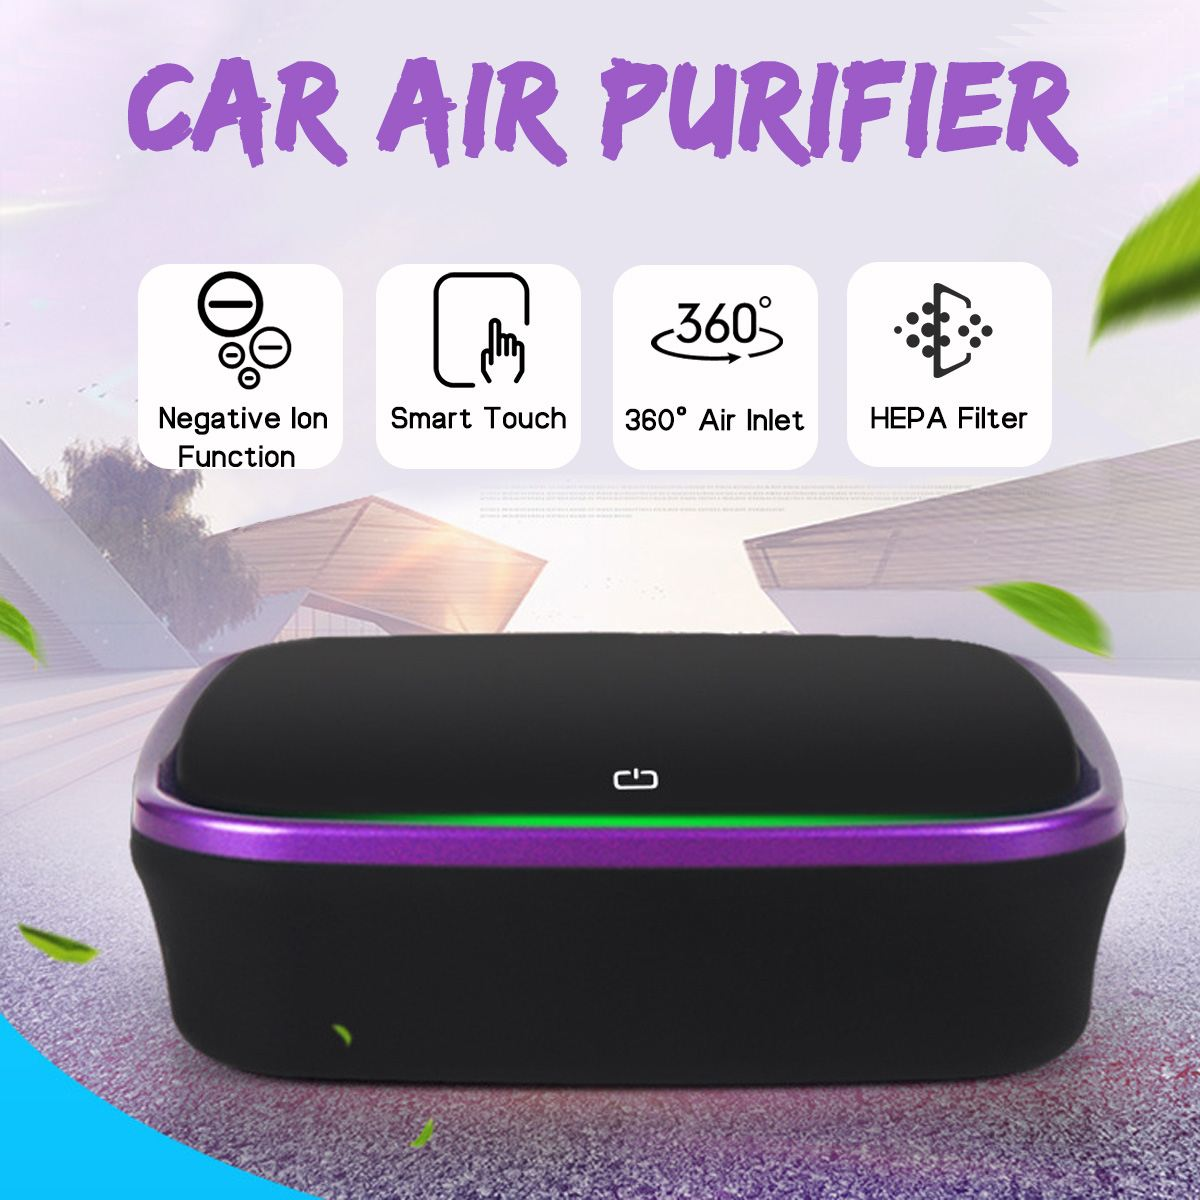 Car Air Purifier 5V Negative Ions Air Cleaner Ionizer Air Freshener Auto Mist Maker Pm 2.5 Eliminator Car Charger for Car Home